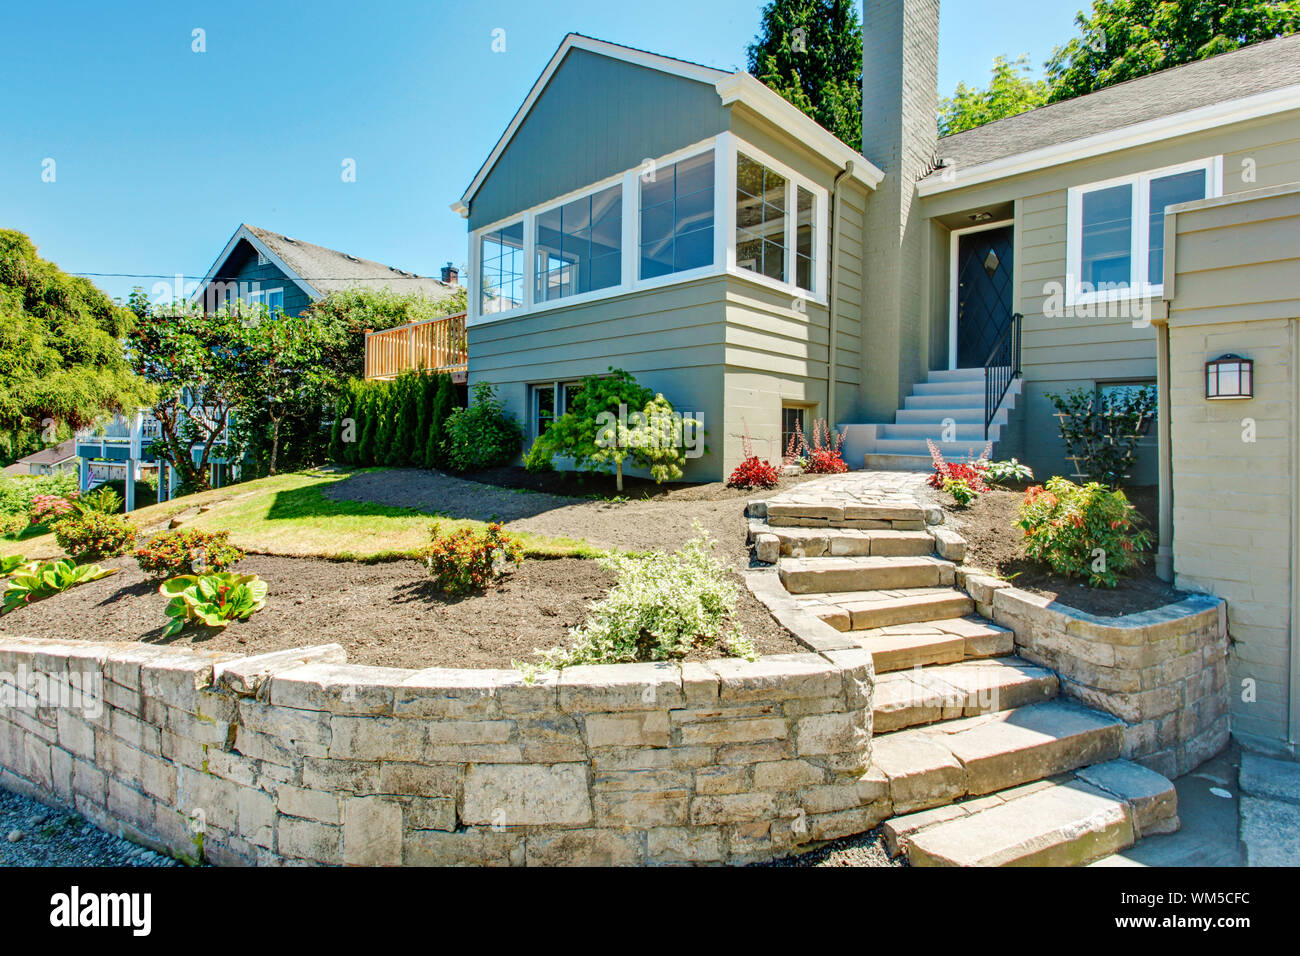 House Exterior In Clapboard Siding And Front Yard Landscape